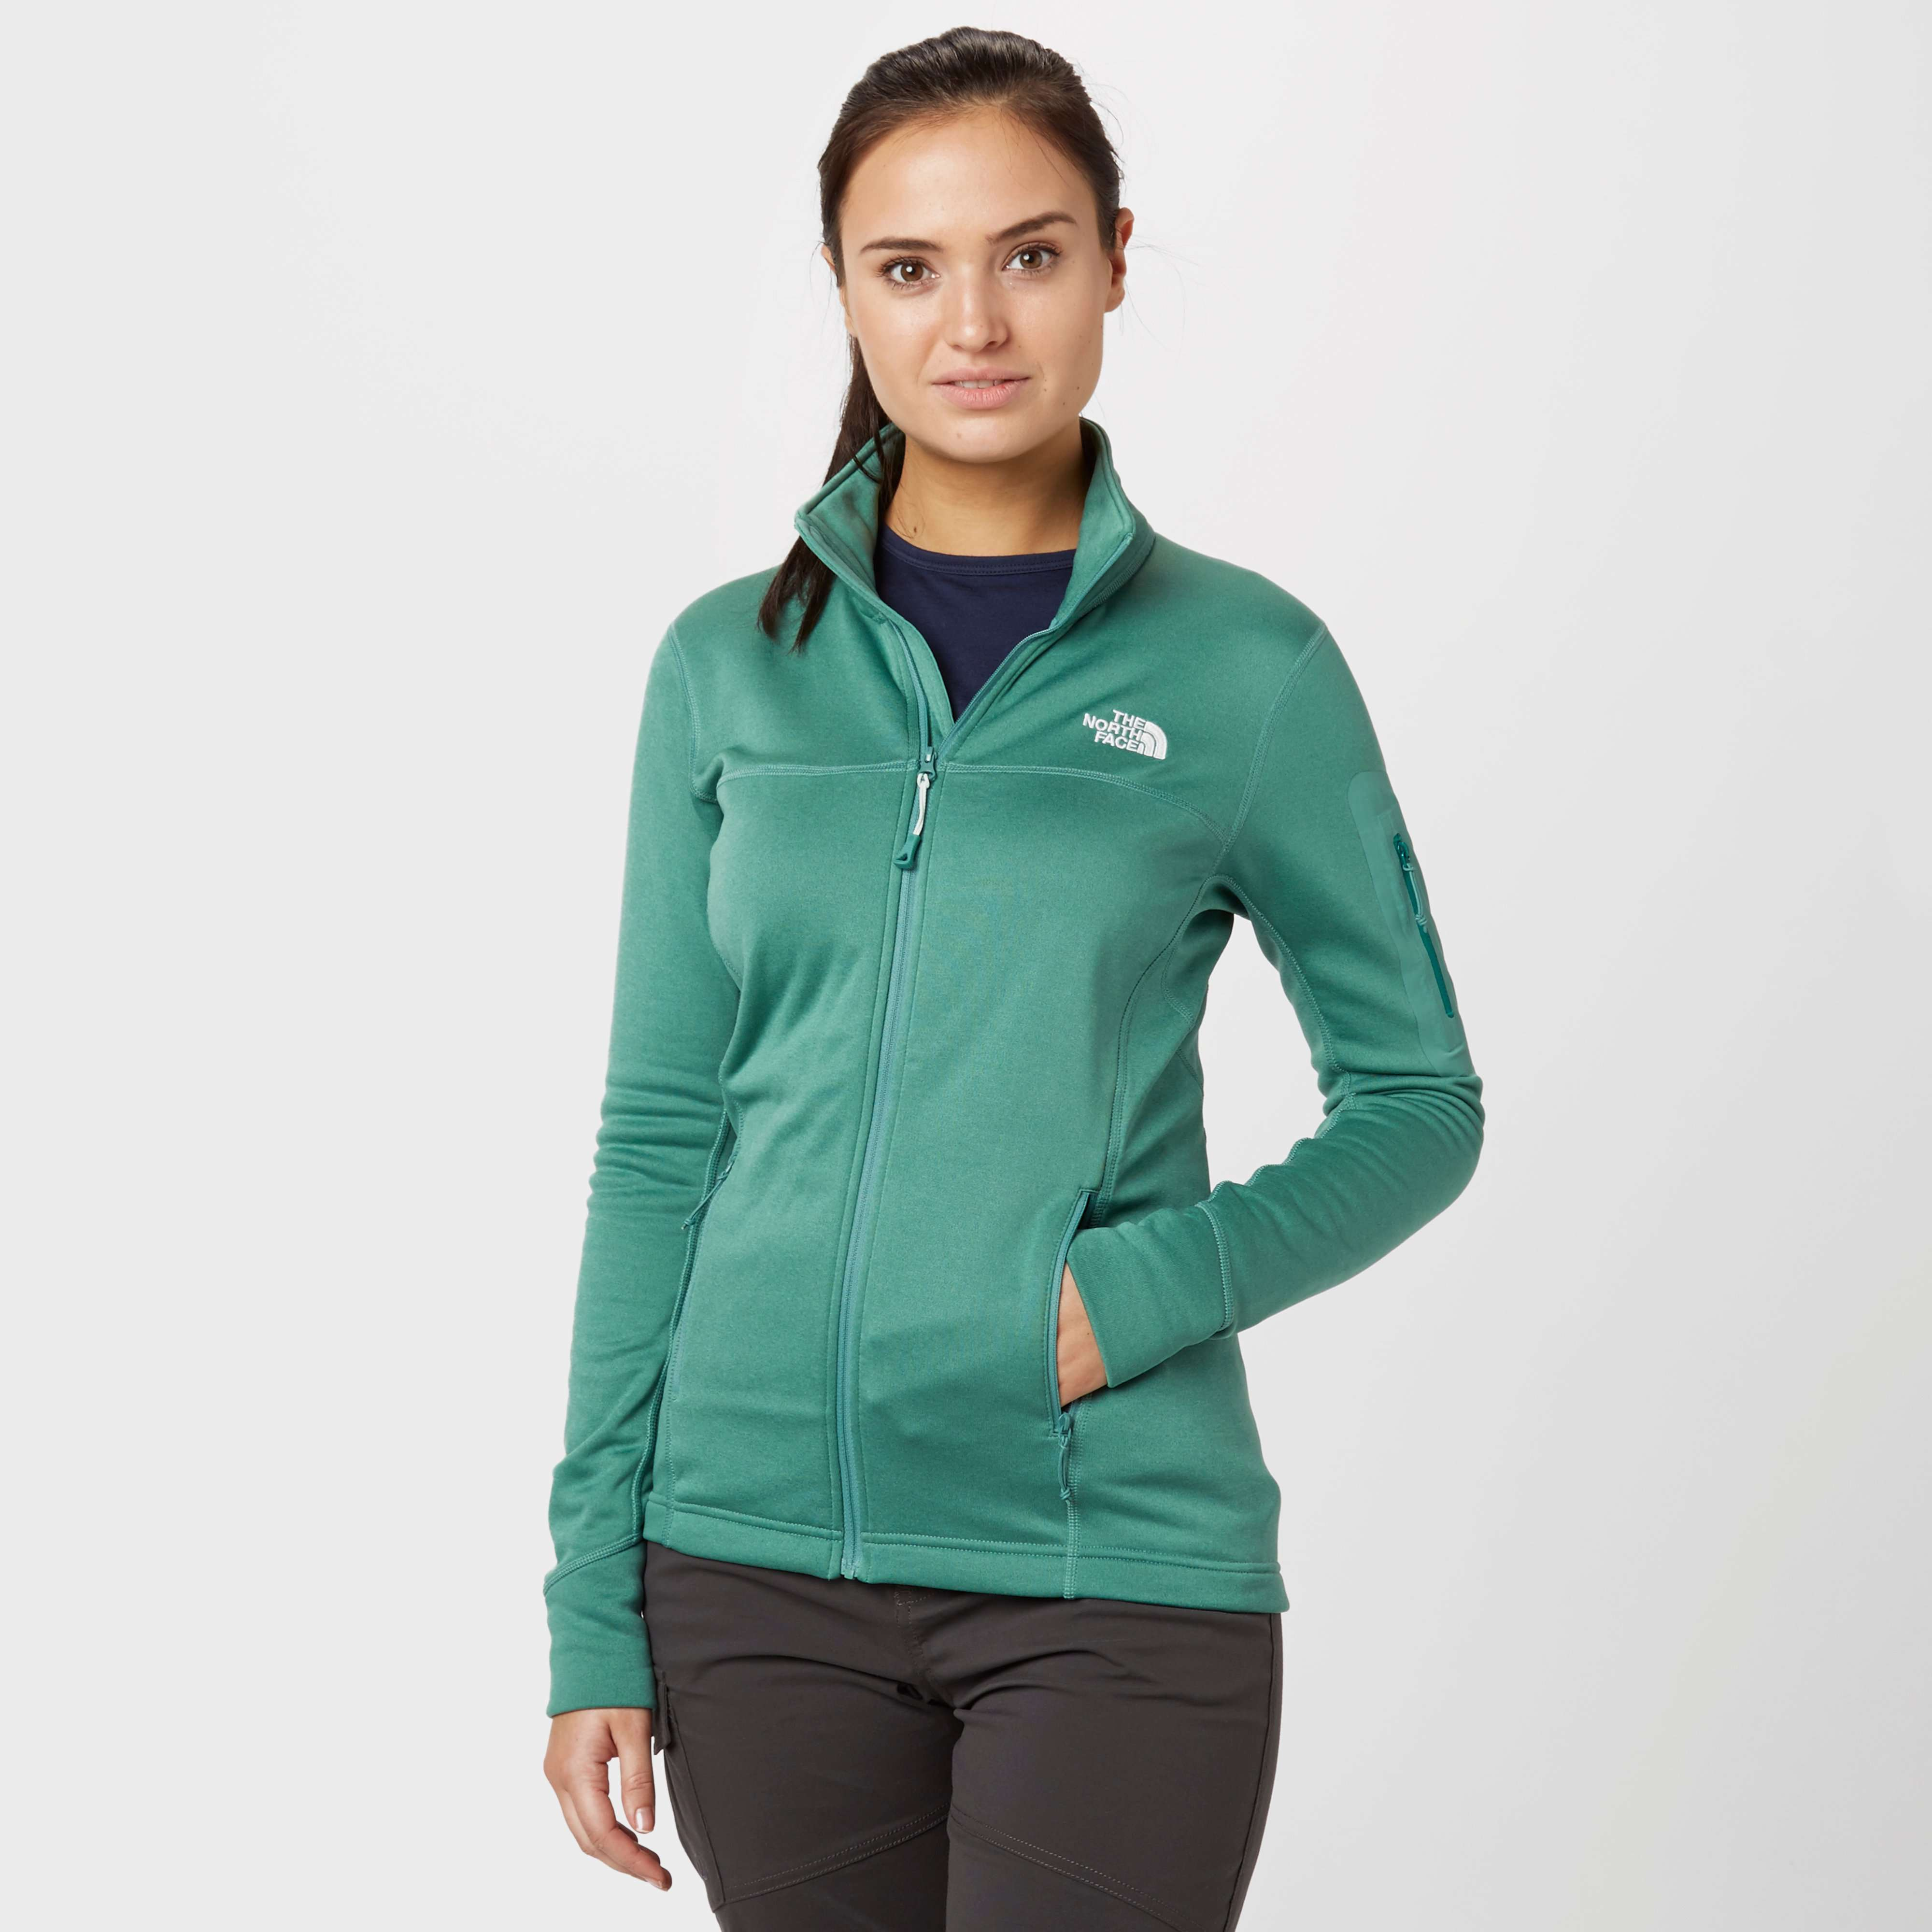 THE NORTH FACE Women's Kyoshi Fleece